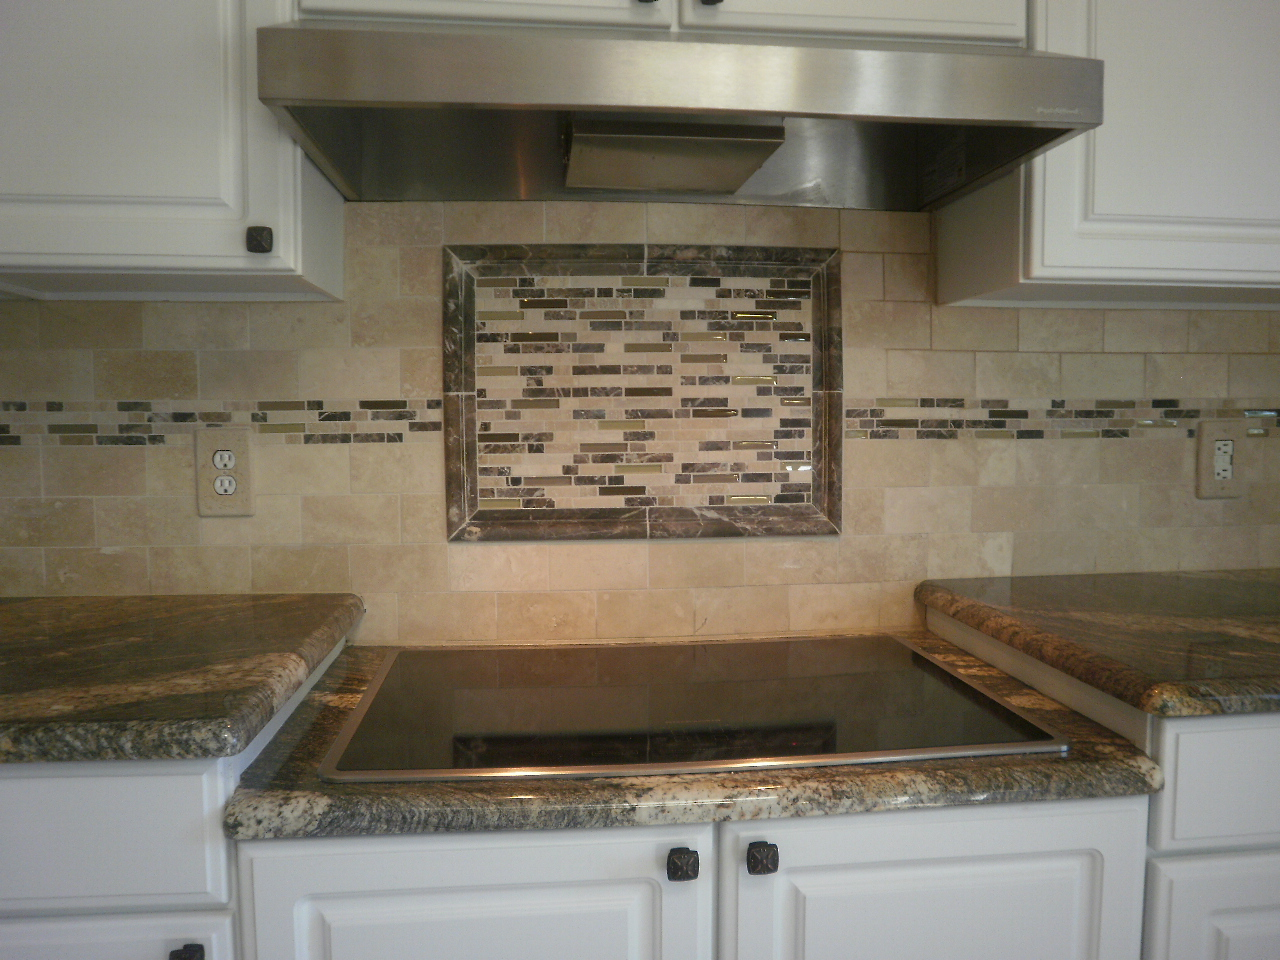 Integrity installations a division of front for Bathroom backsplash ideas